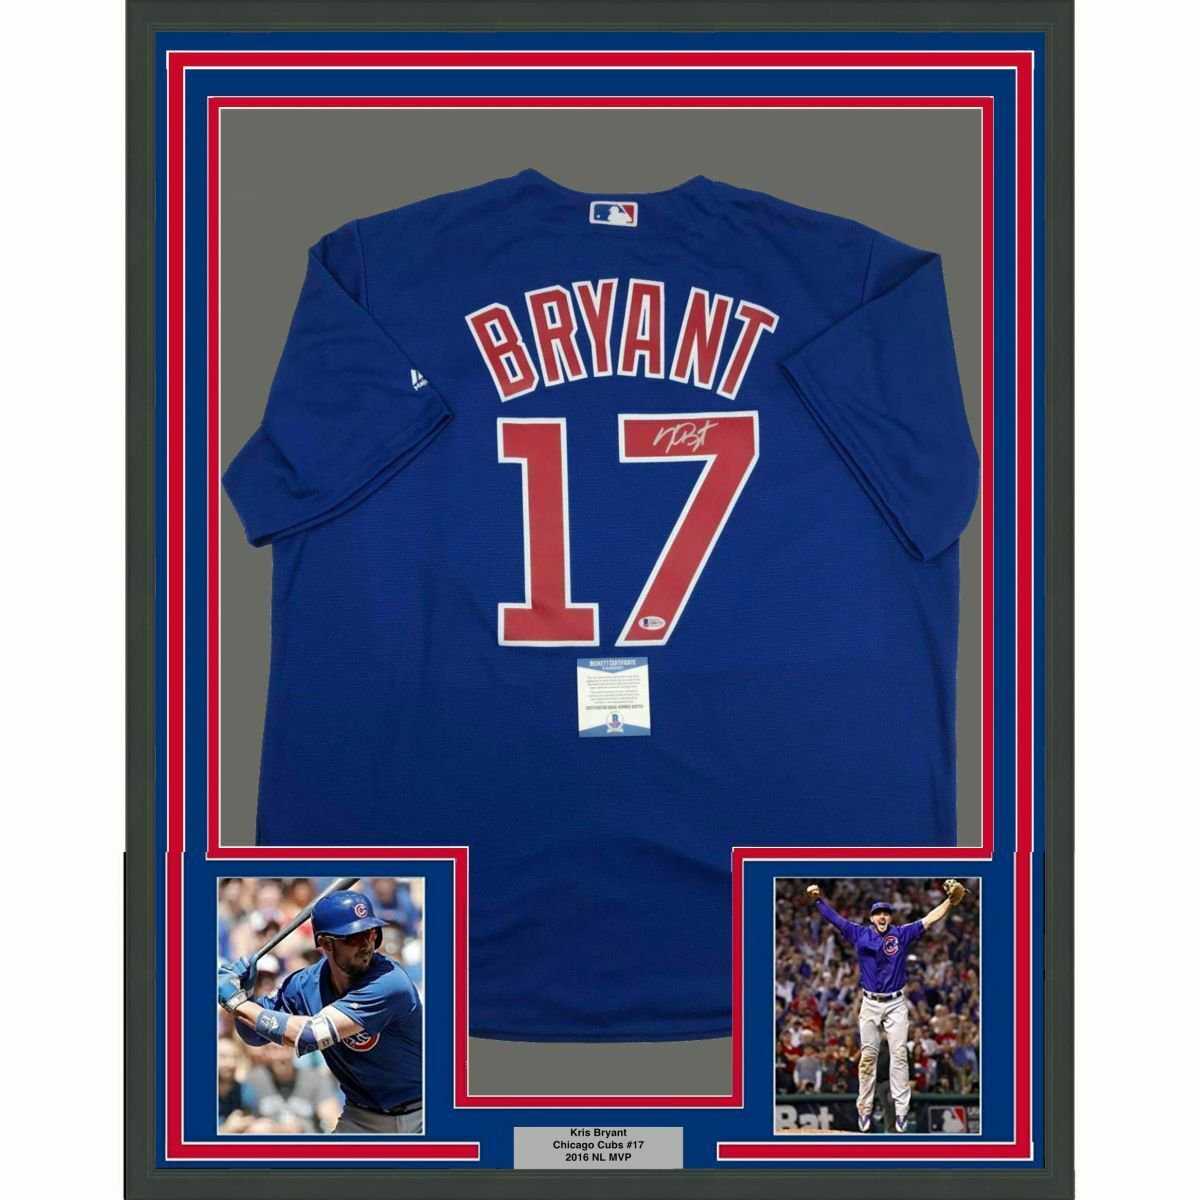 Kris Bryant Autographed Signed Framed Chicago Cubs Jersey BECKETT